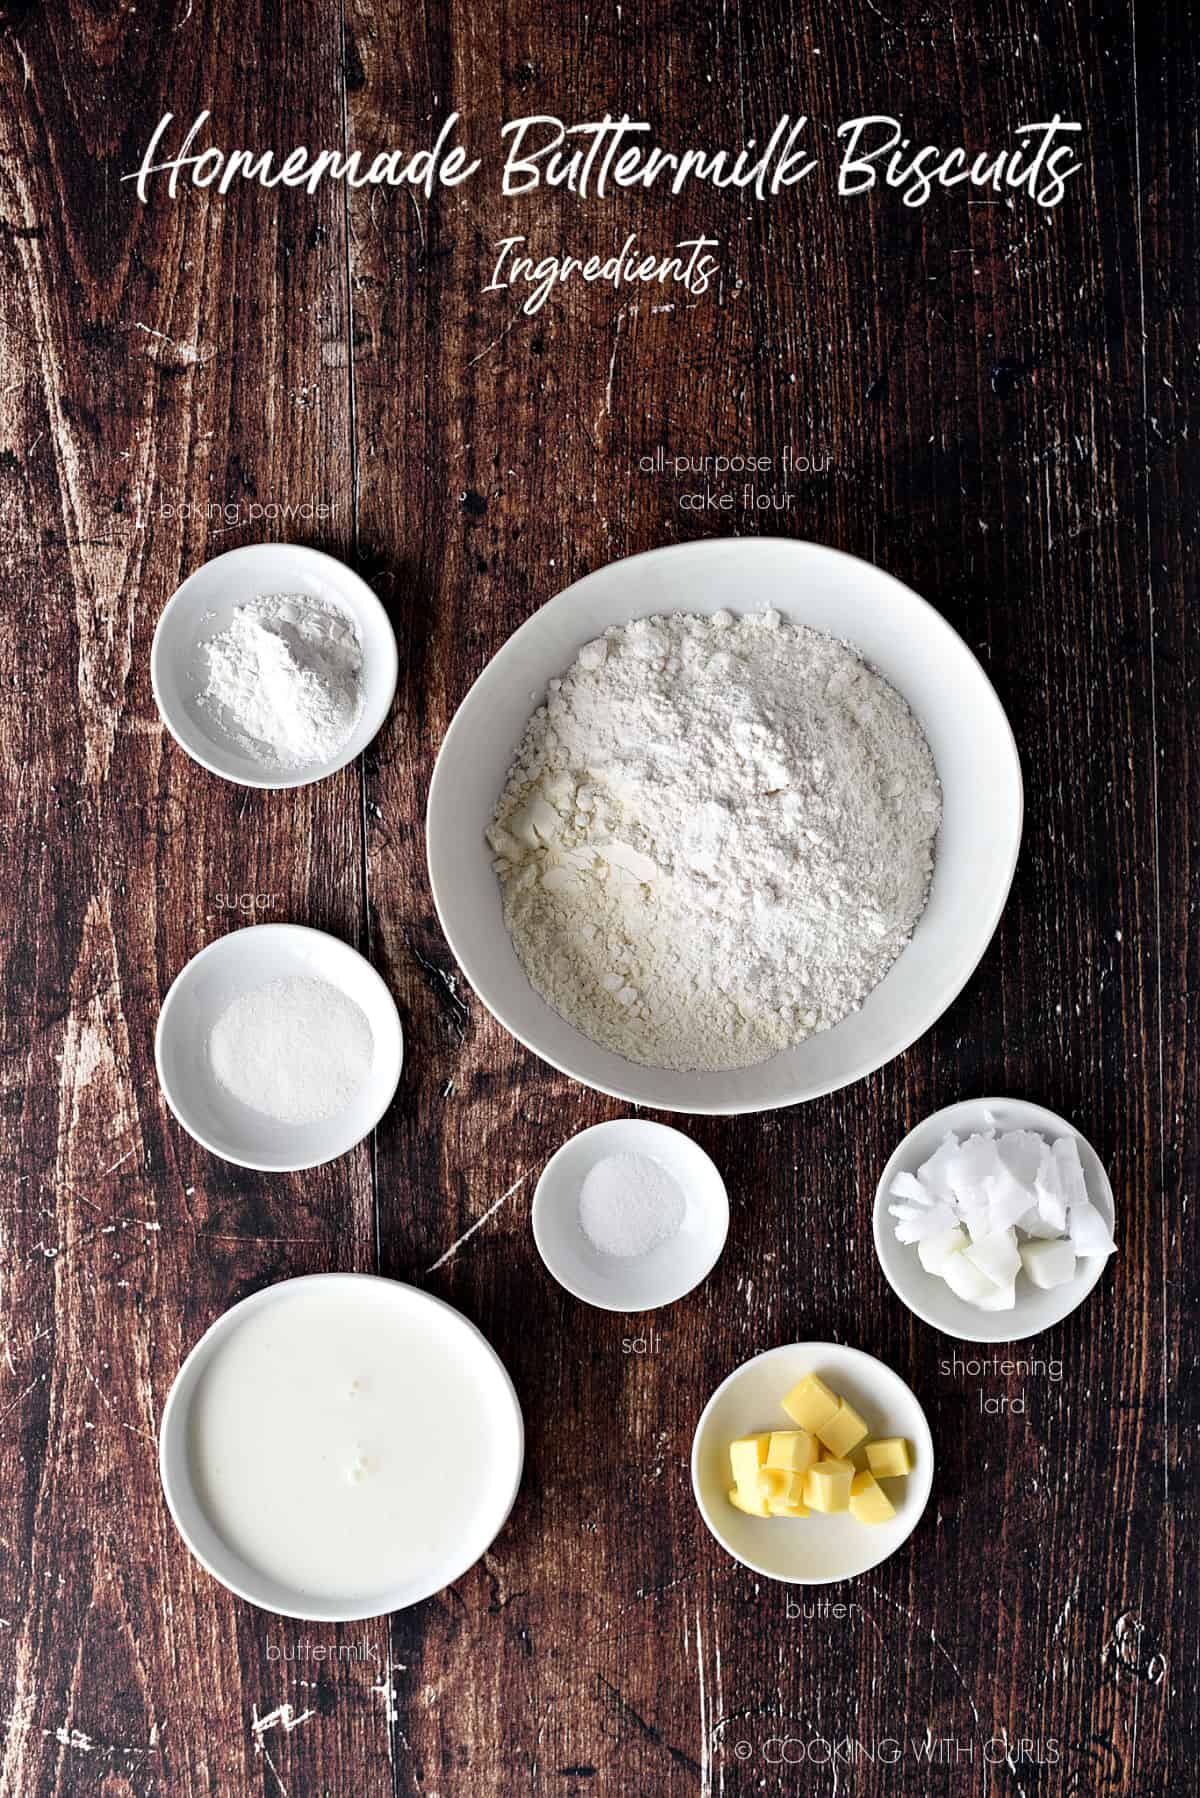 White bowls with cake and all-purpose flours, baking powder, sugar, salt, buttermilk, butter, shortening and lard.